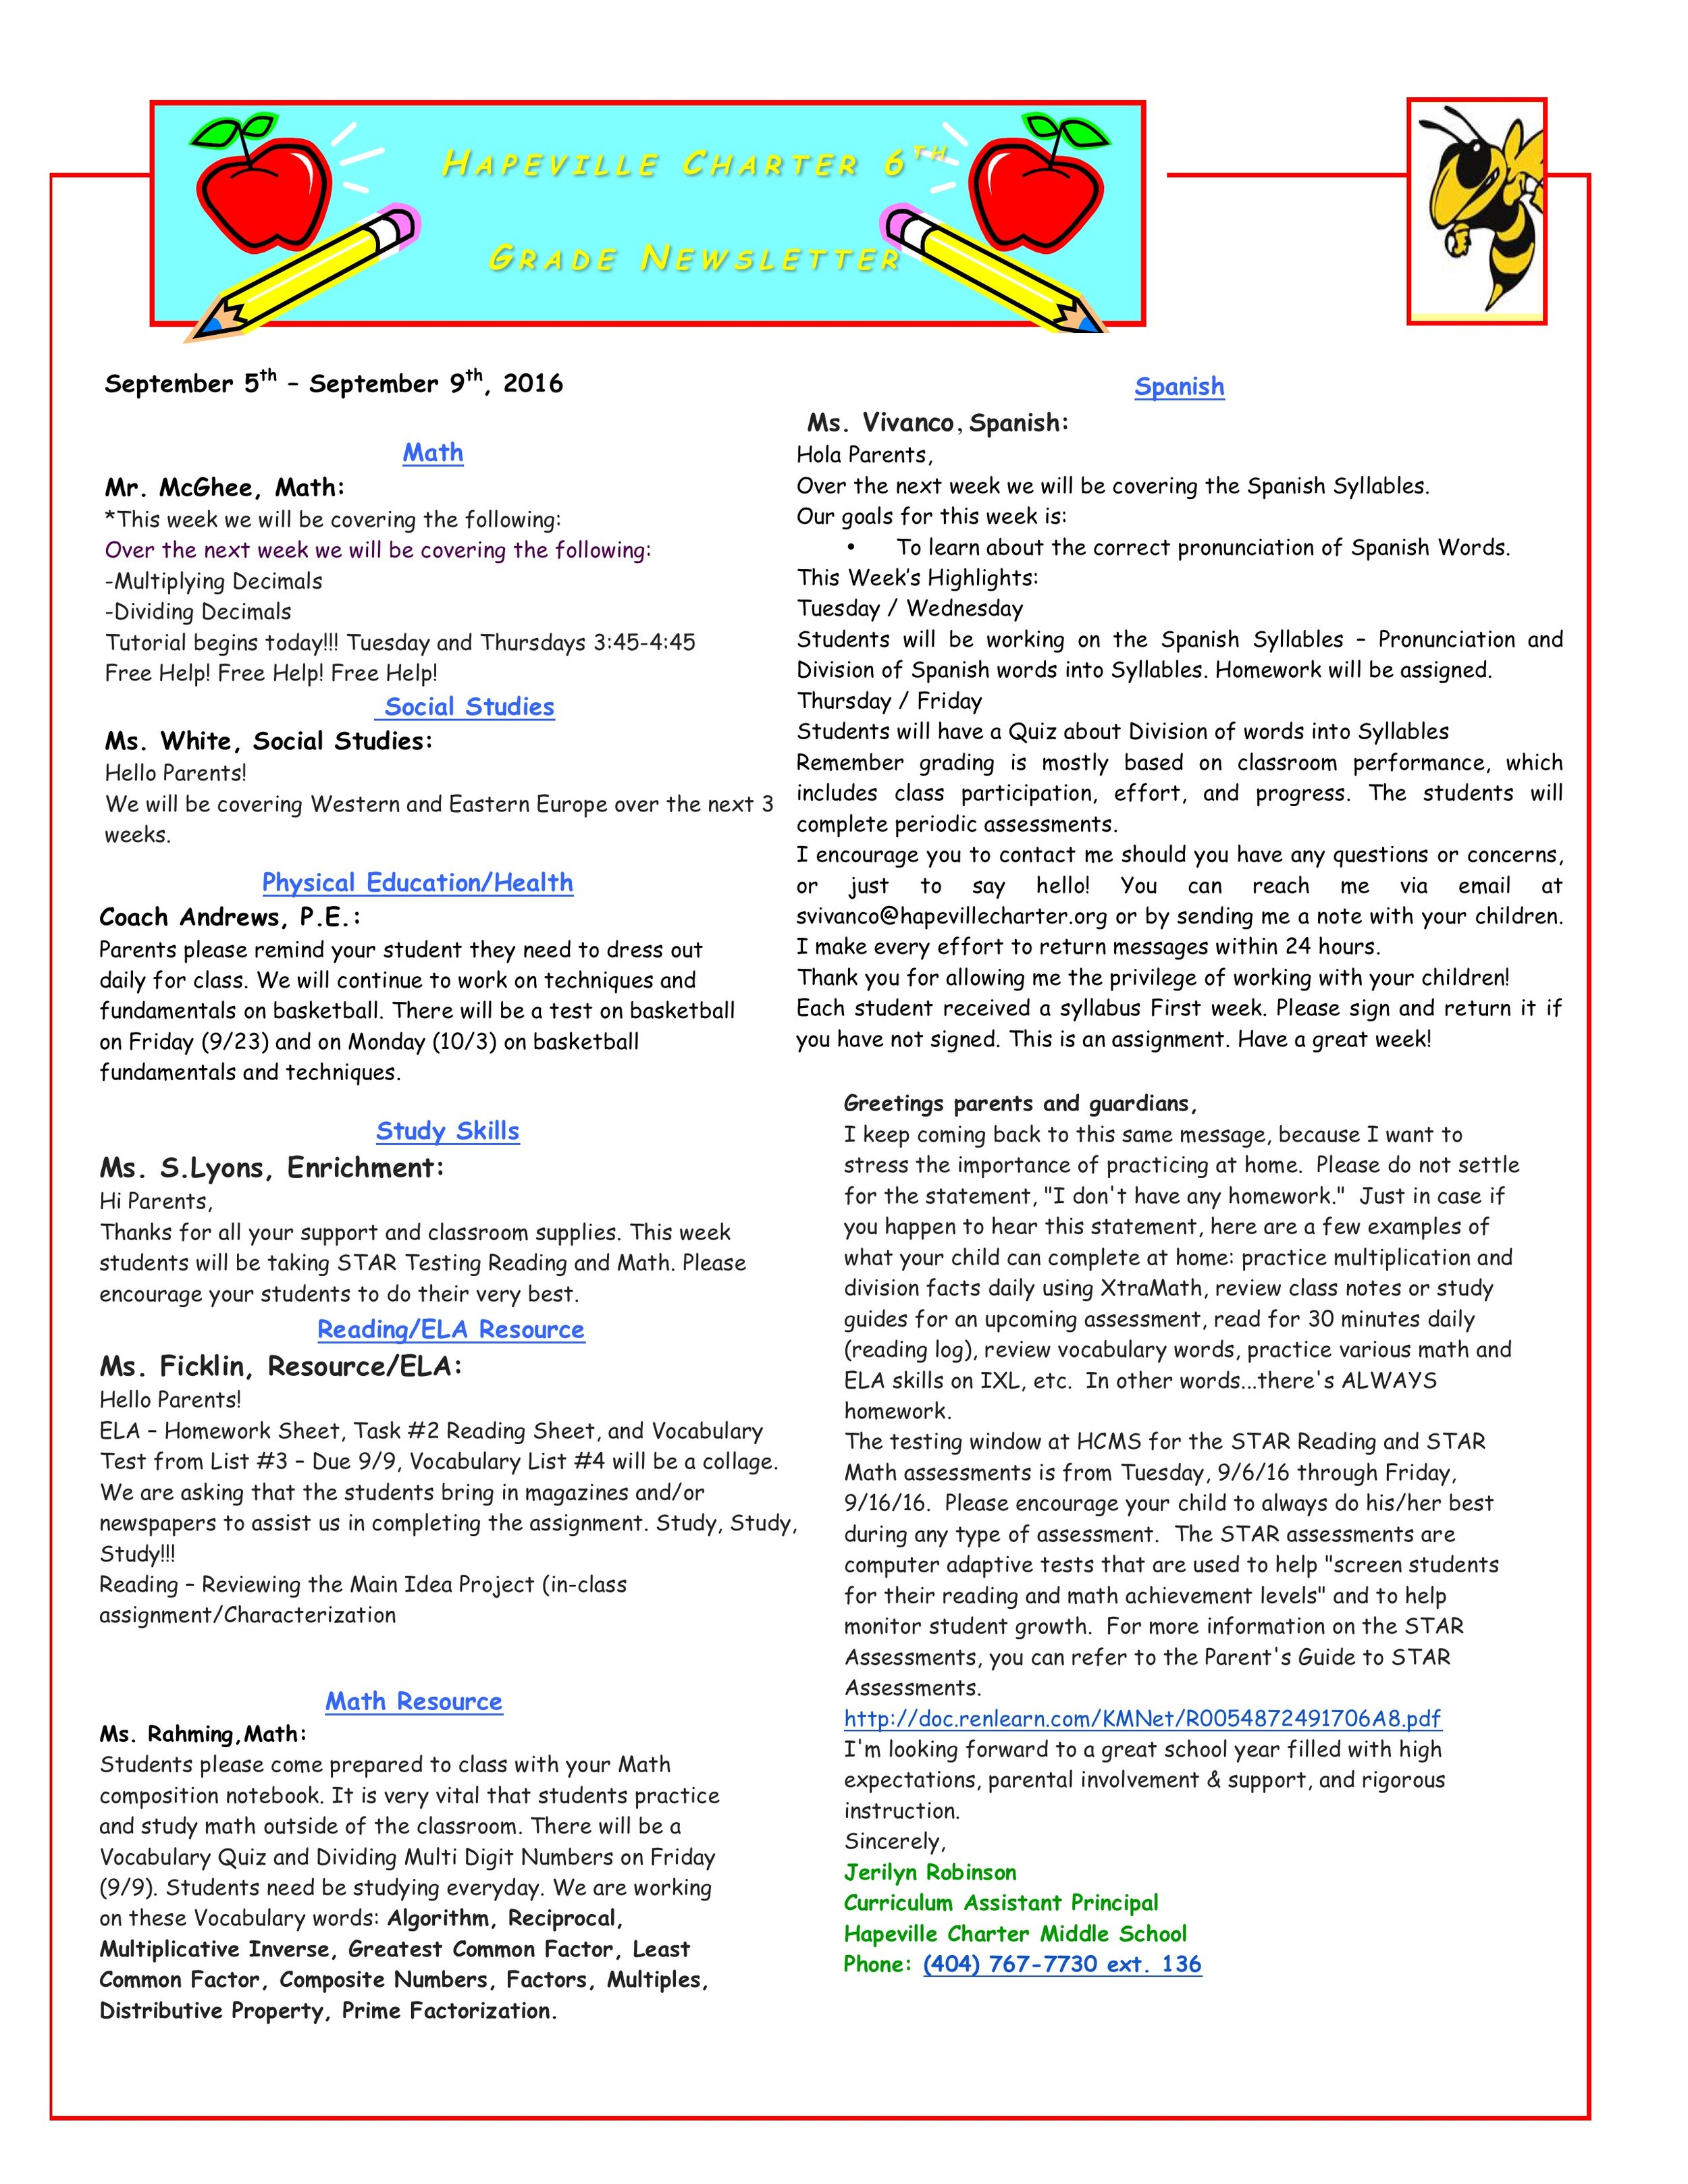 Newsletter Image6th Grade Newsletter 9-5-2016.jpeg